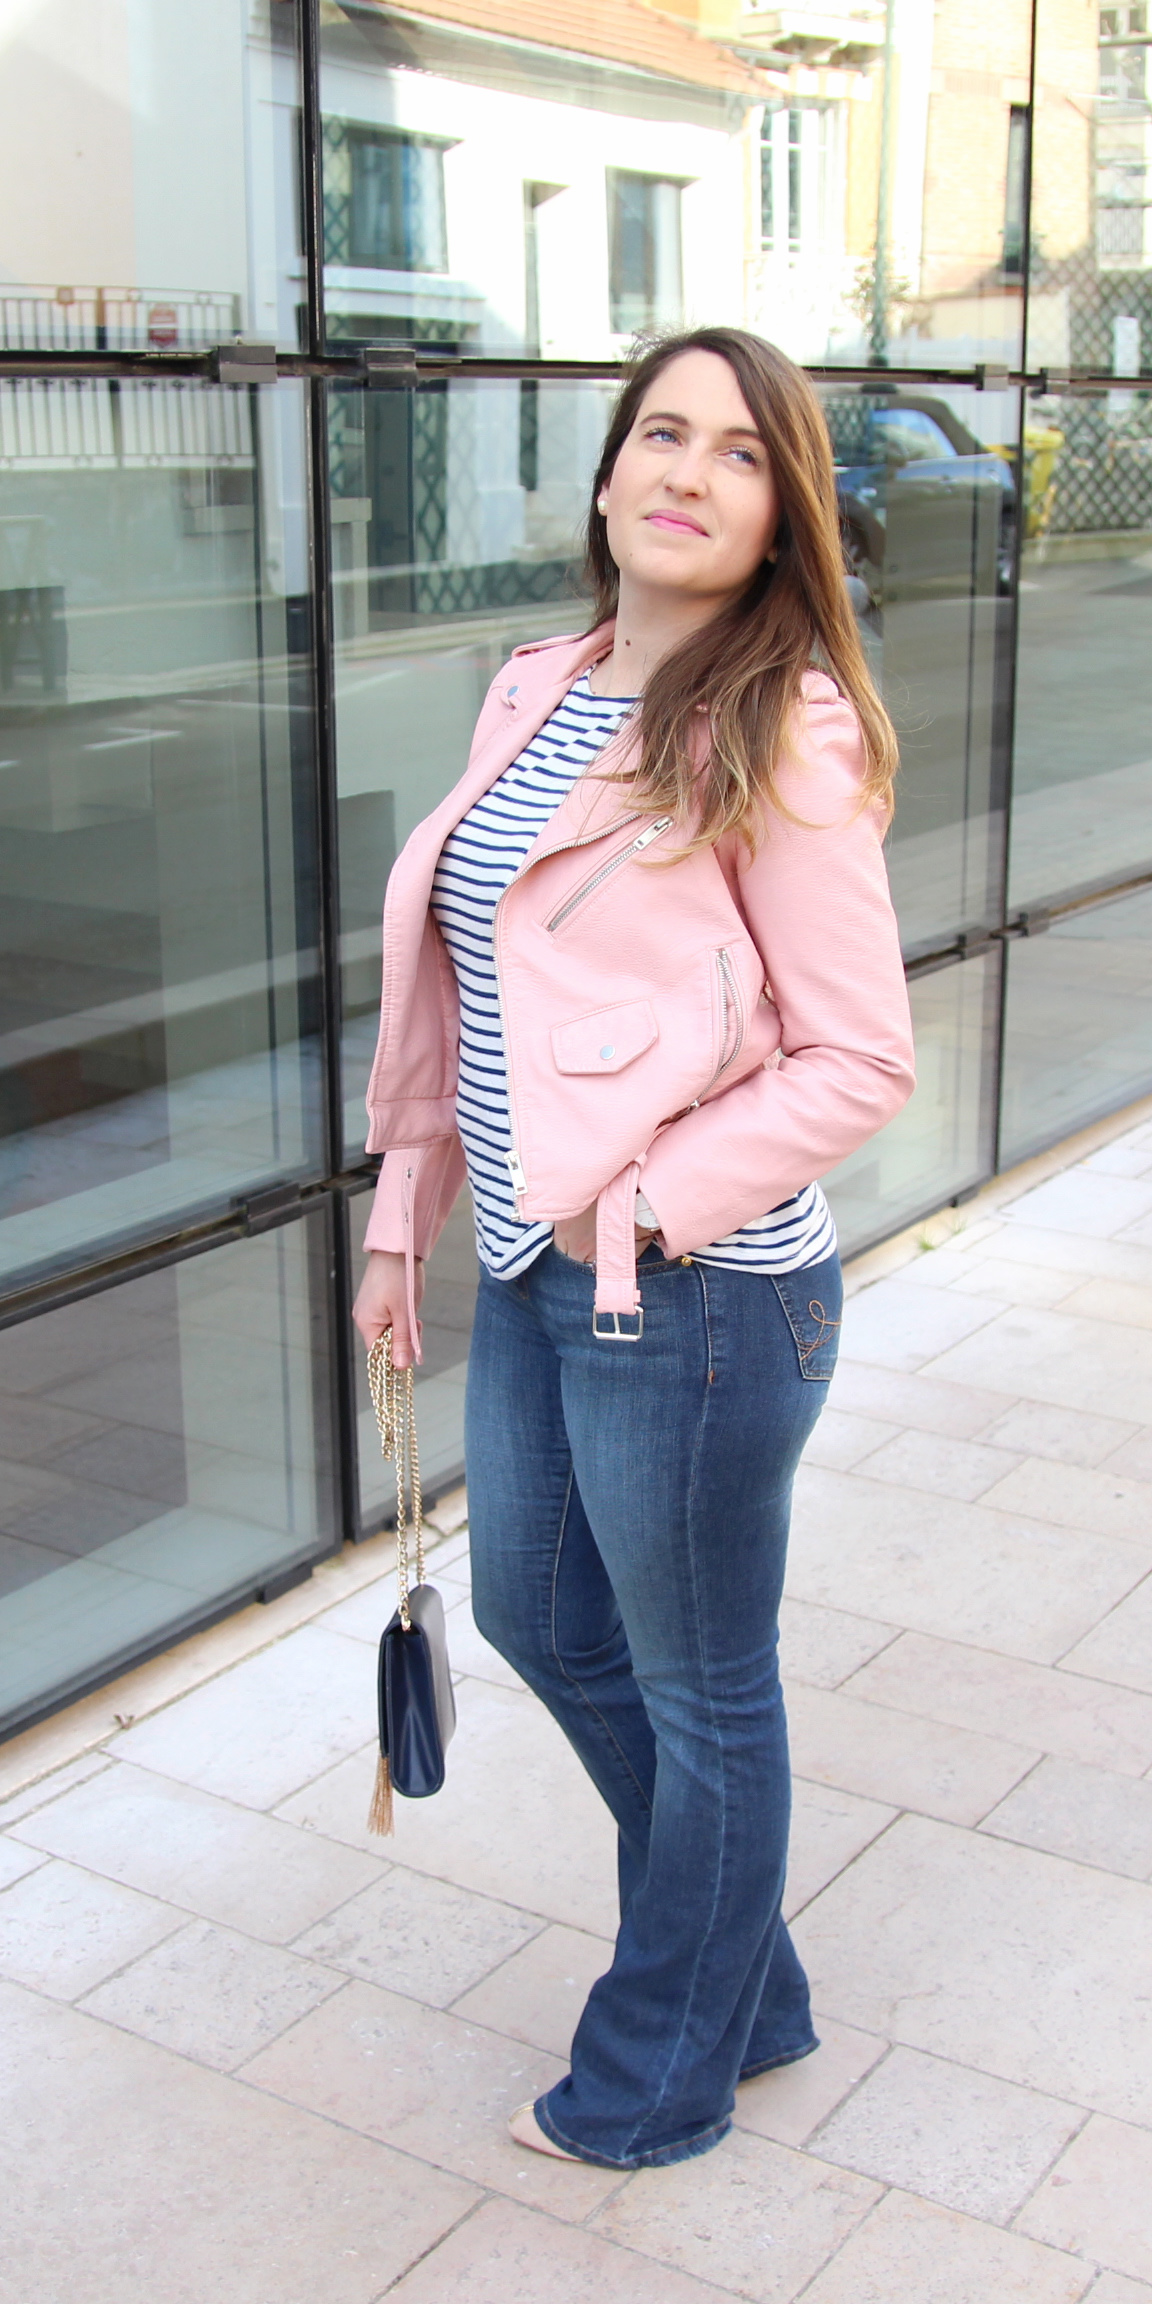 perfecto-rose-zara-marinniere-denim-influencer-fashion-ottd-look-seralynepointcom-paris-IMG_6939